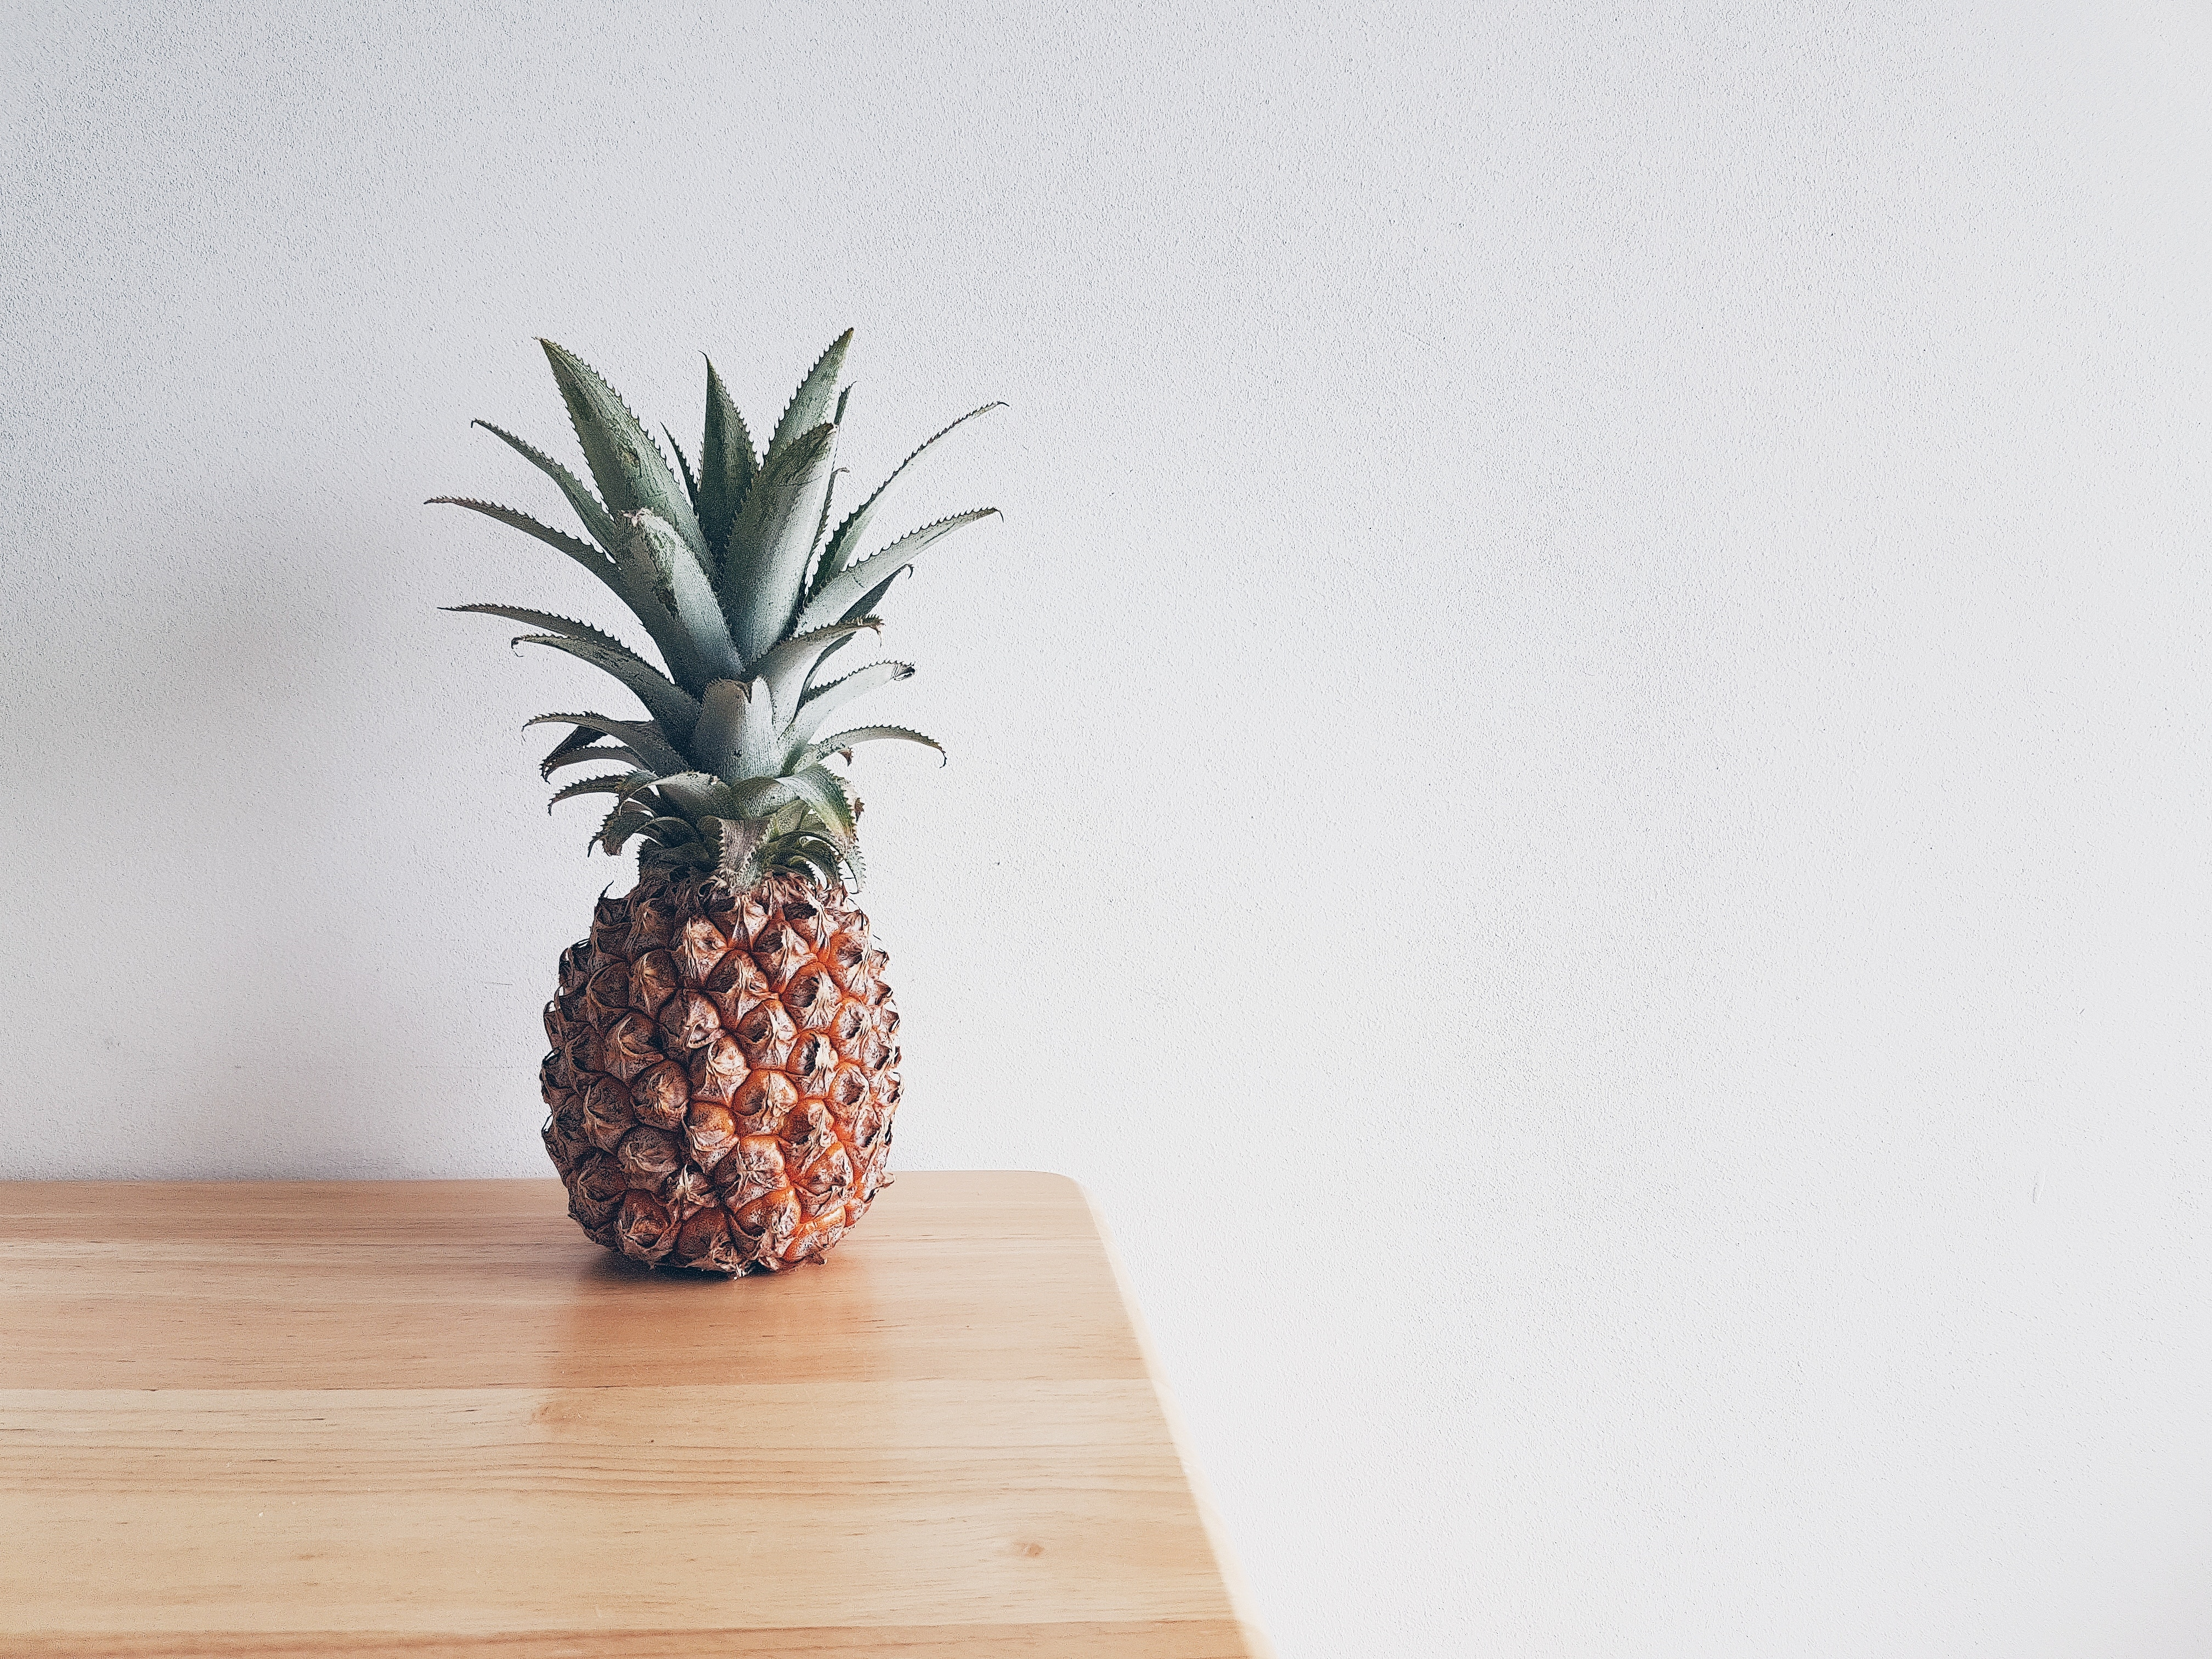 a pineapple 5001 placed on the table 55341